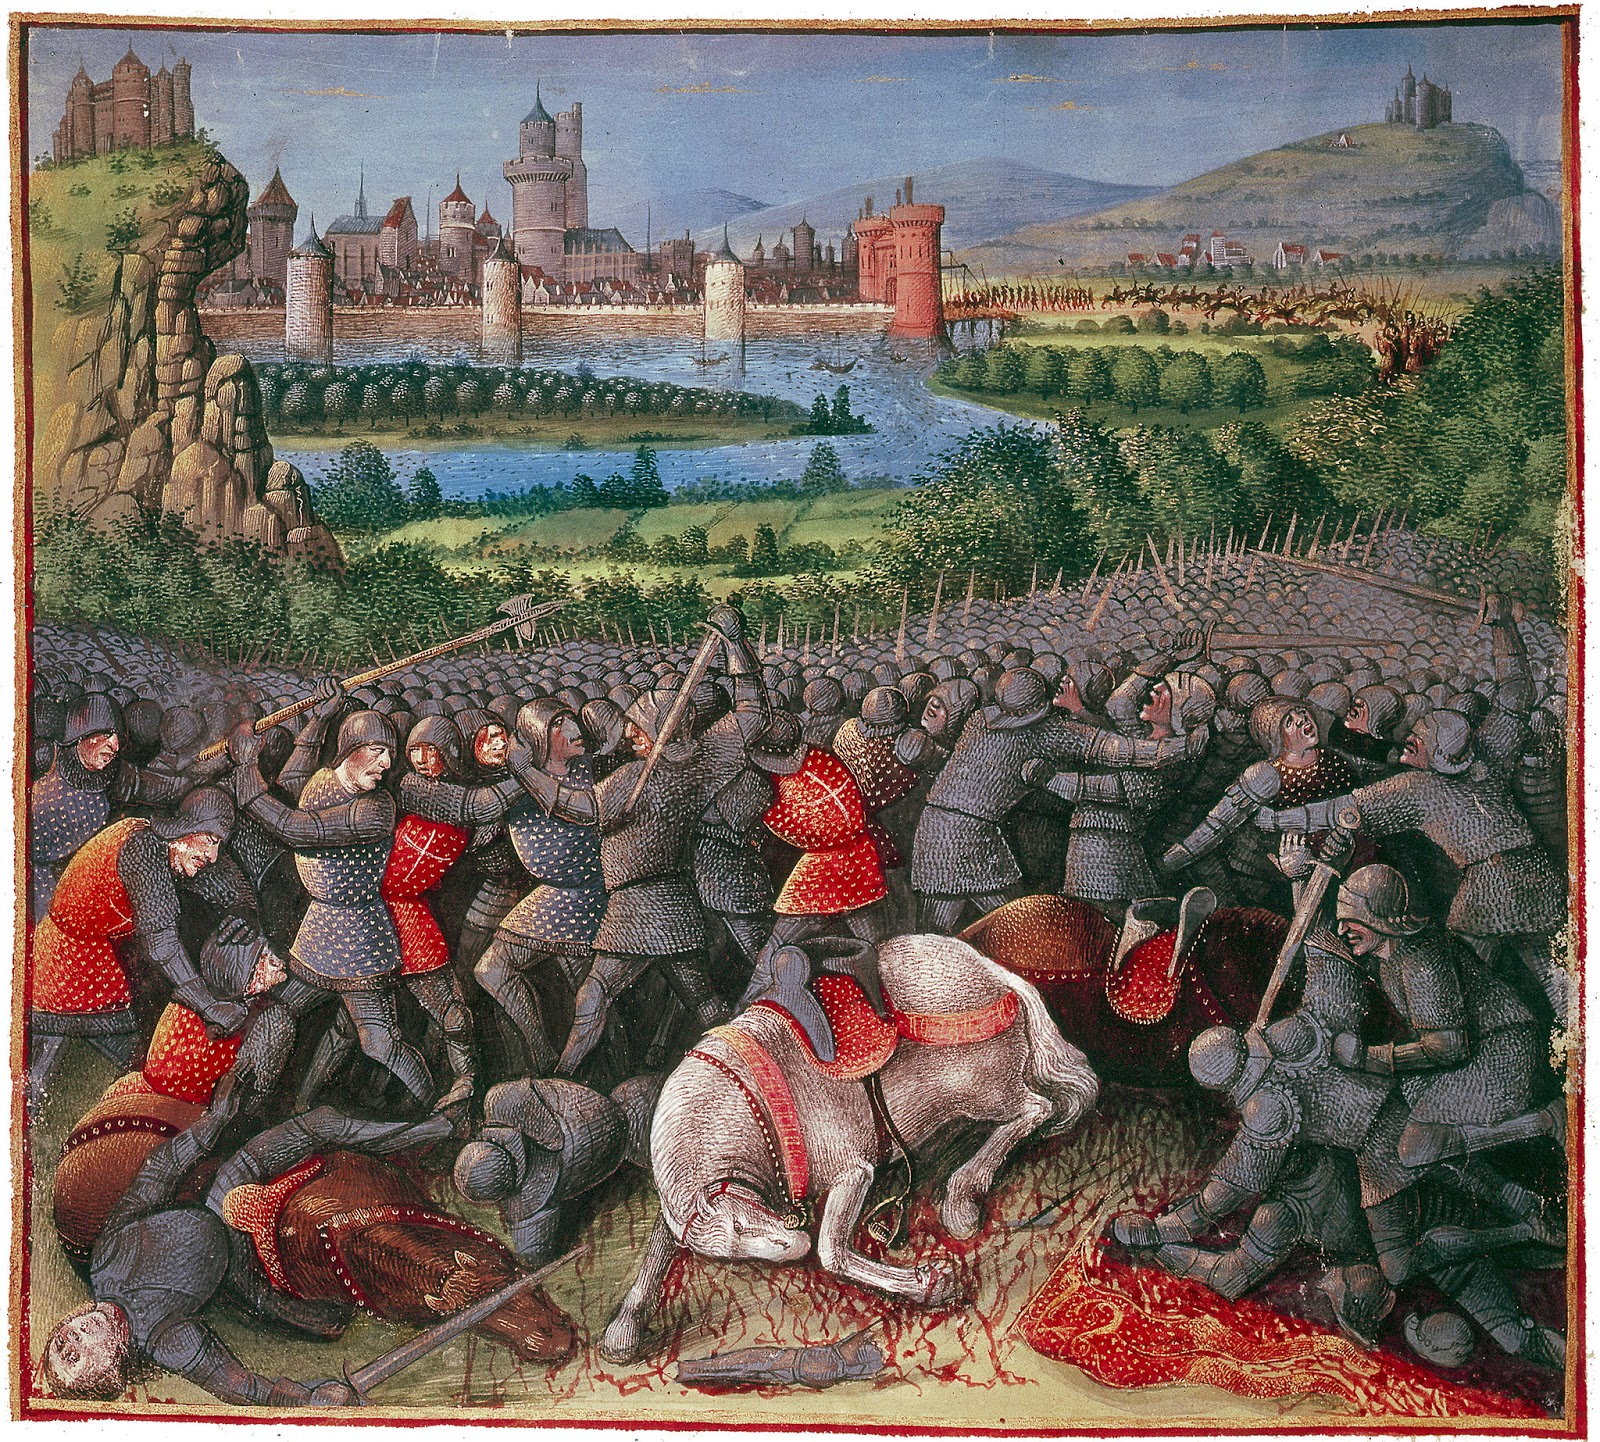 the crusades holy war of the christians Iv the islamic and christian wars jihad and crusades general background the concept of holy war is becoming well known in the world, thanks to the media coverage of the current crisis with militant islam.